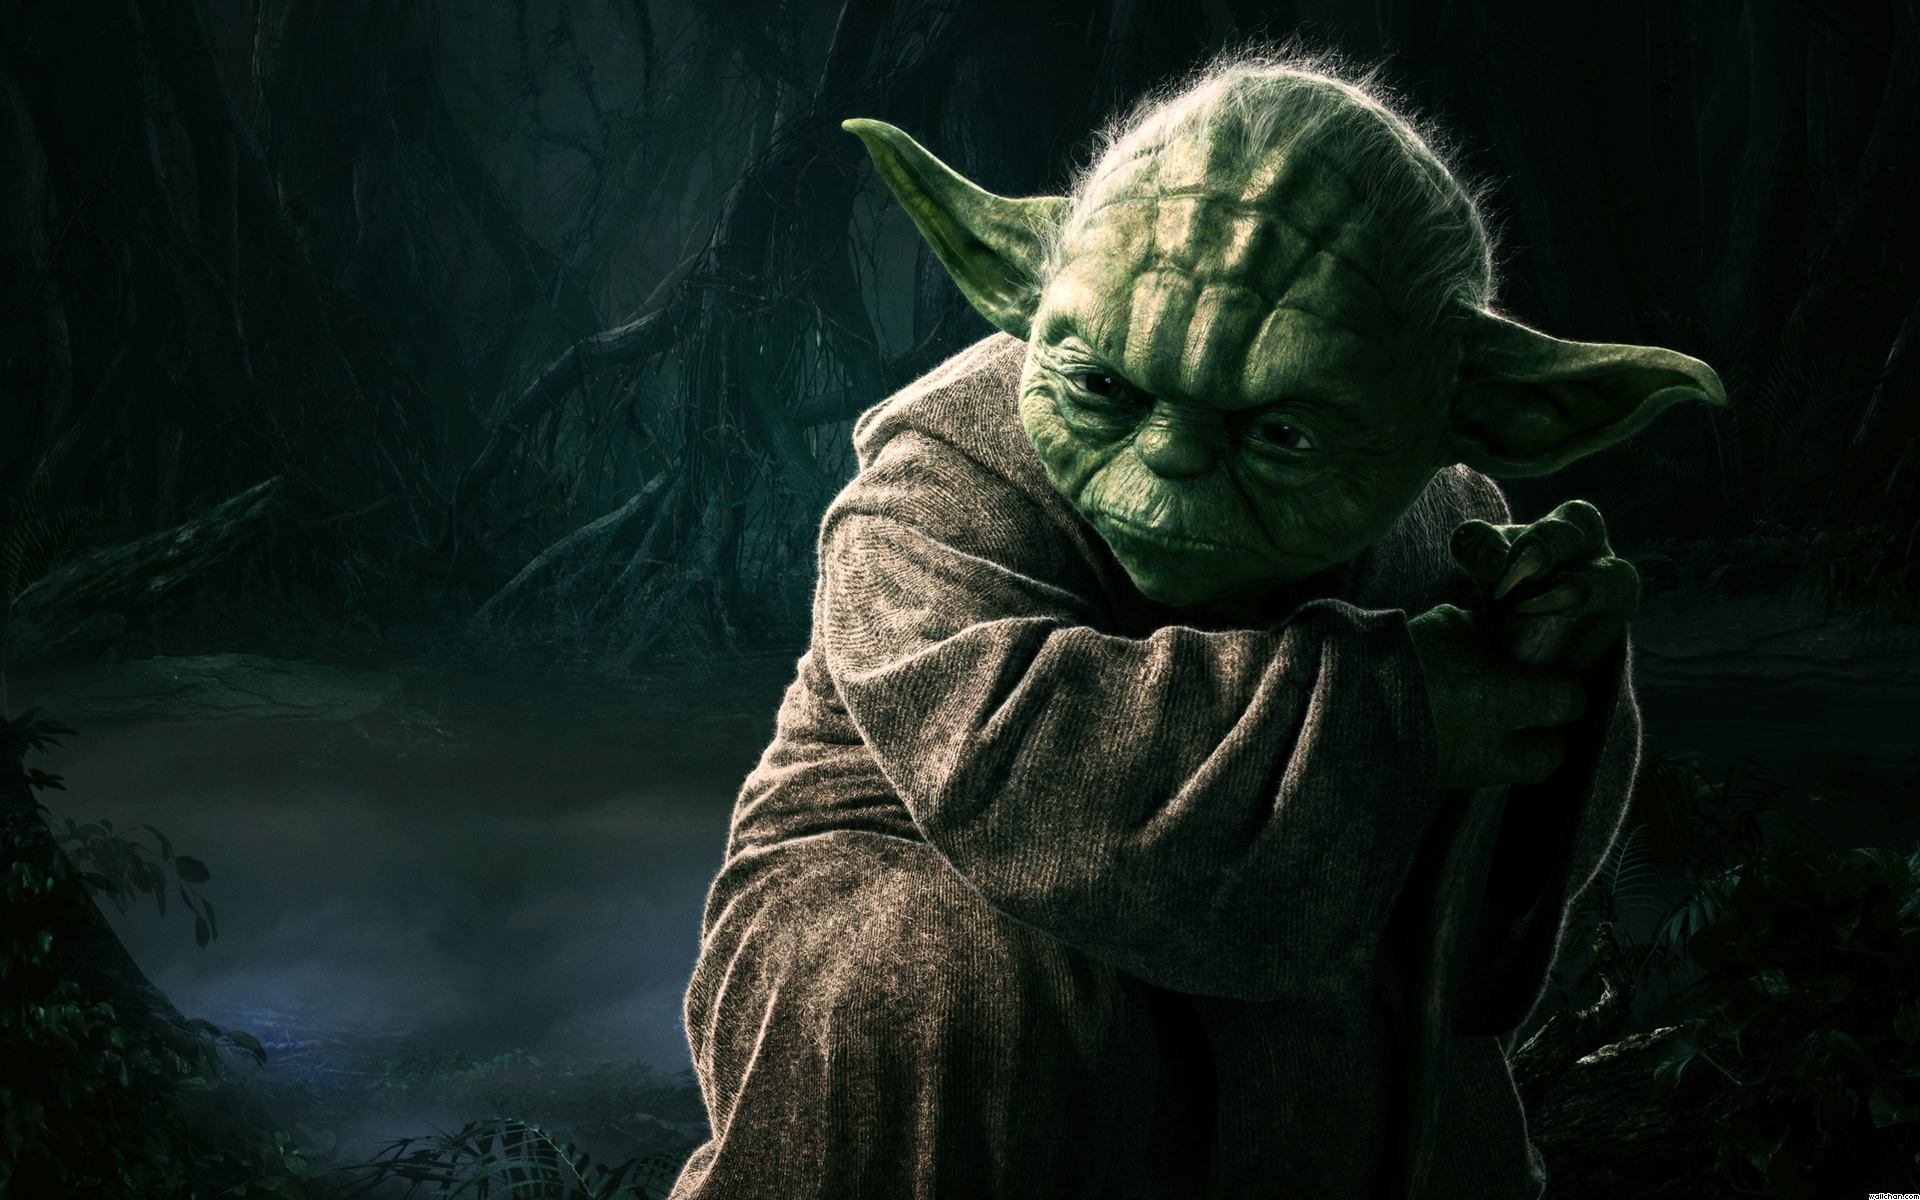 Yoda Star Wars Exclusive HD Wallpapers #1592